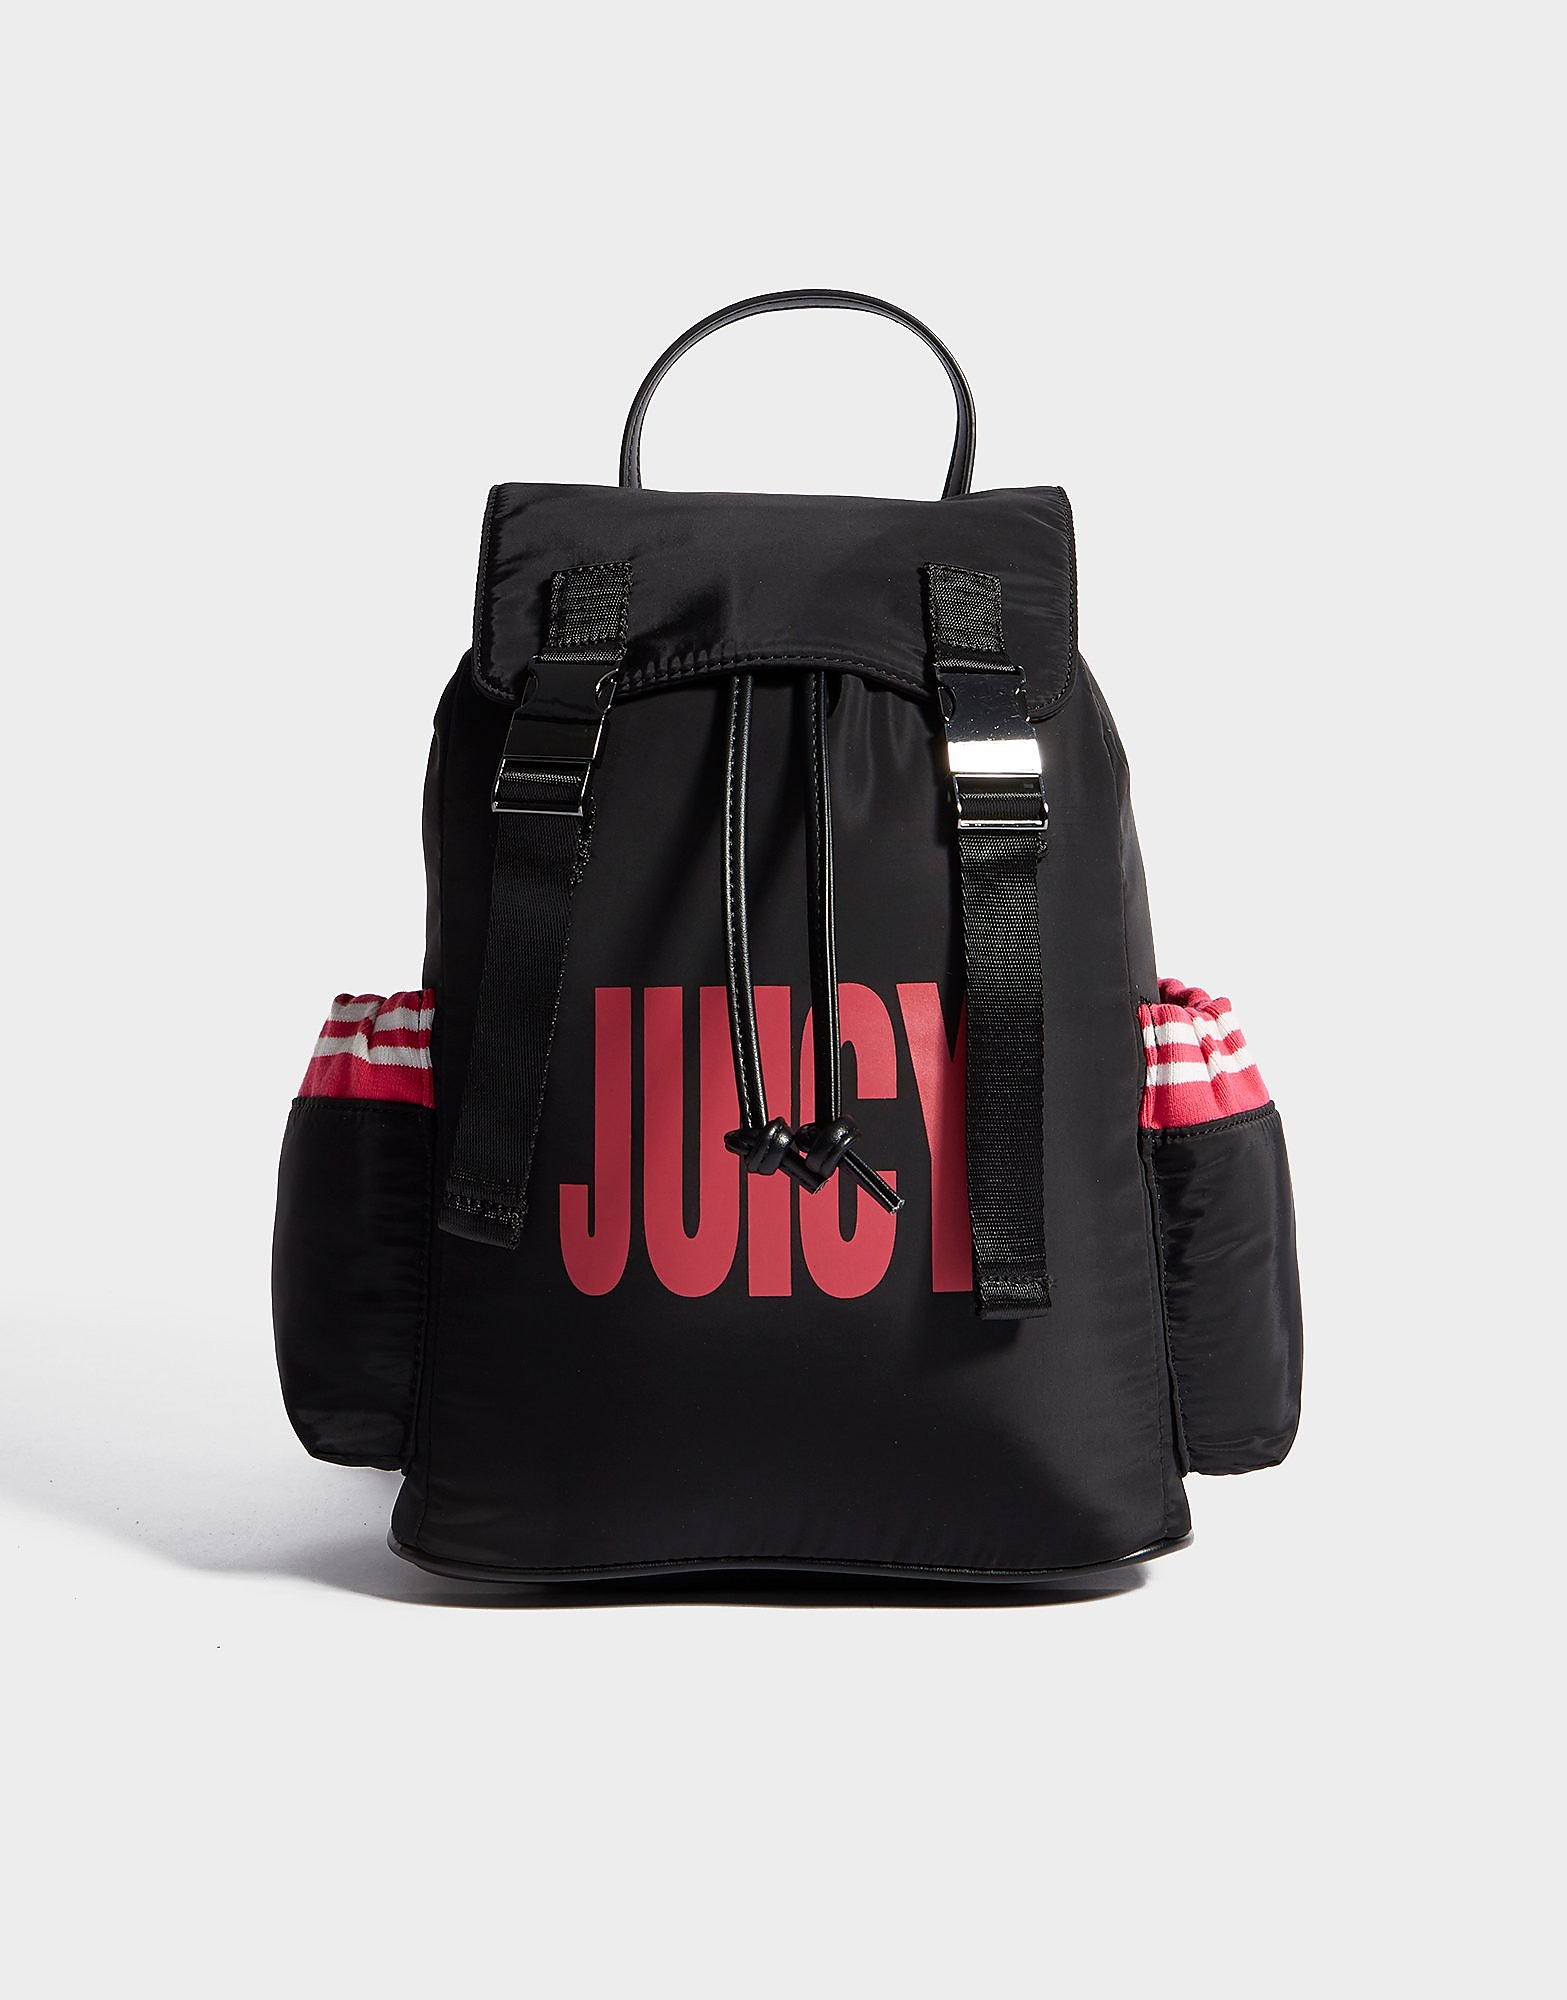 Juicy by Juicy Couture Waist Bag